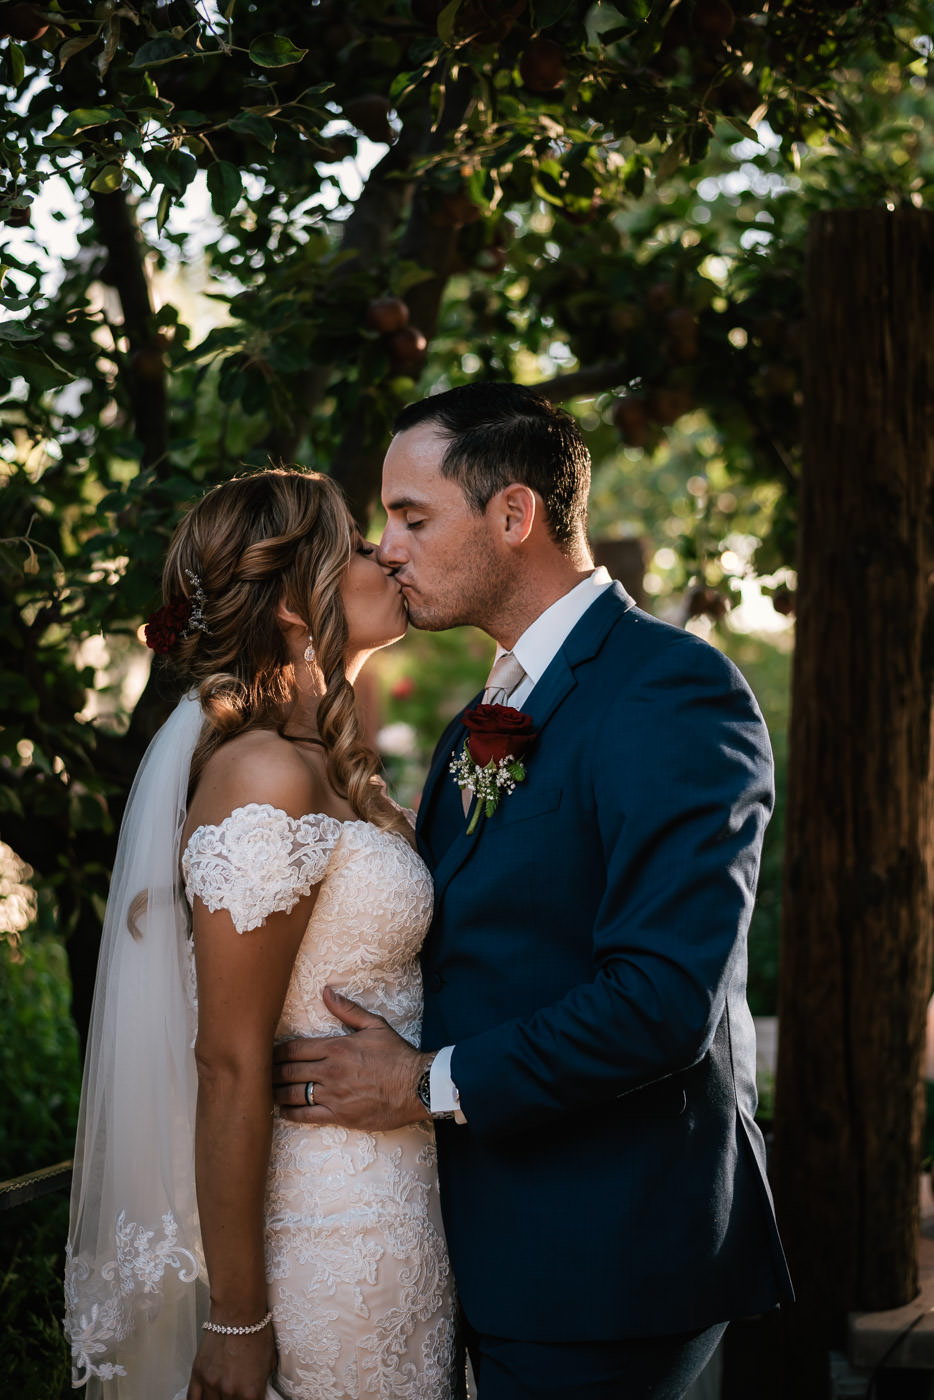 Passionate kiss under the apple tree at this rustic wedding in Oak Glen California.